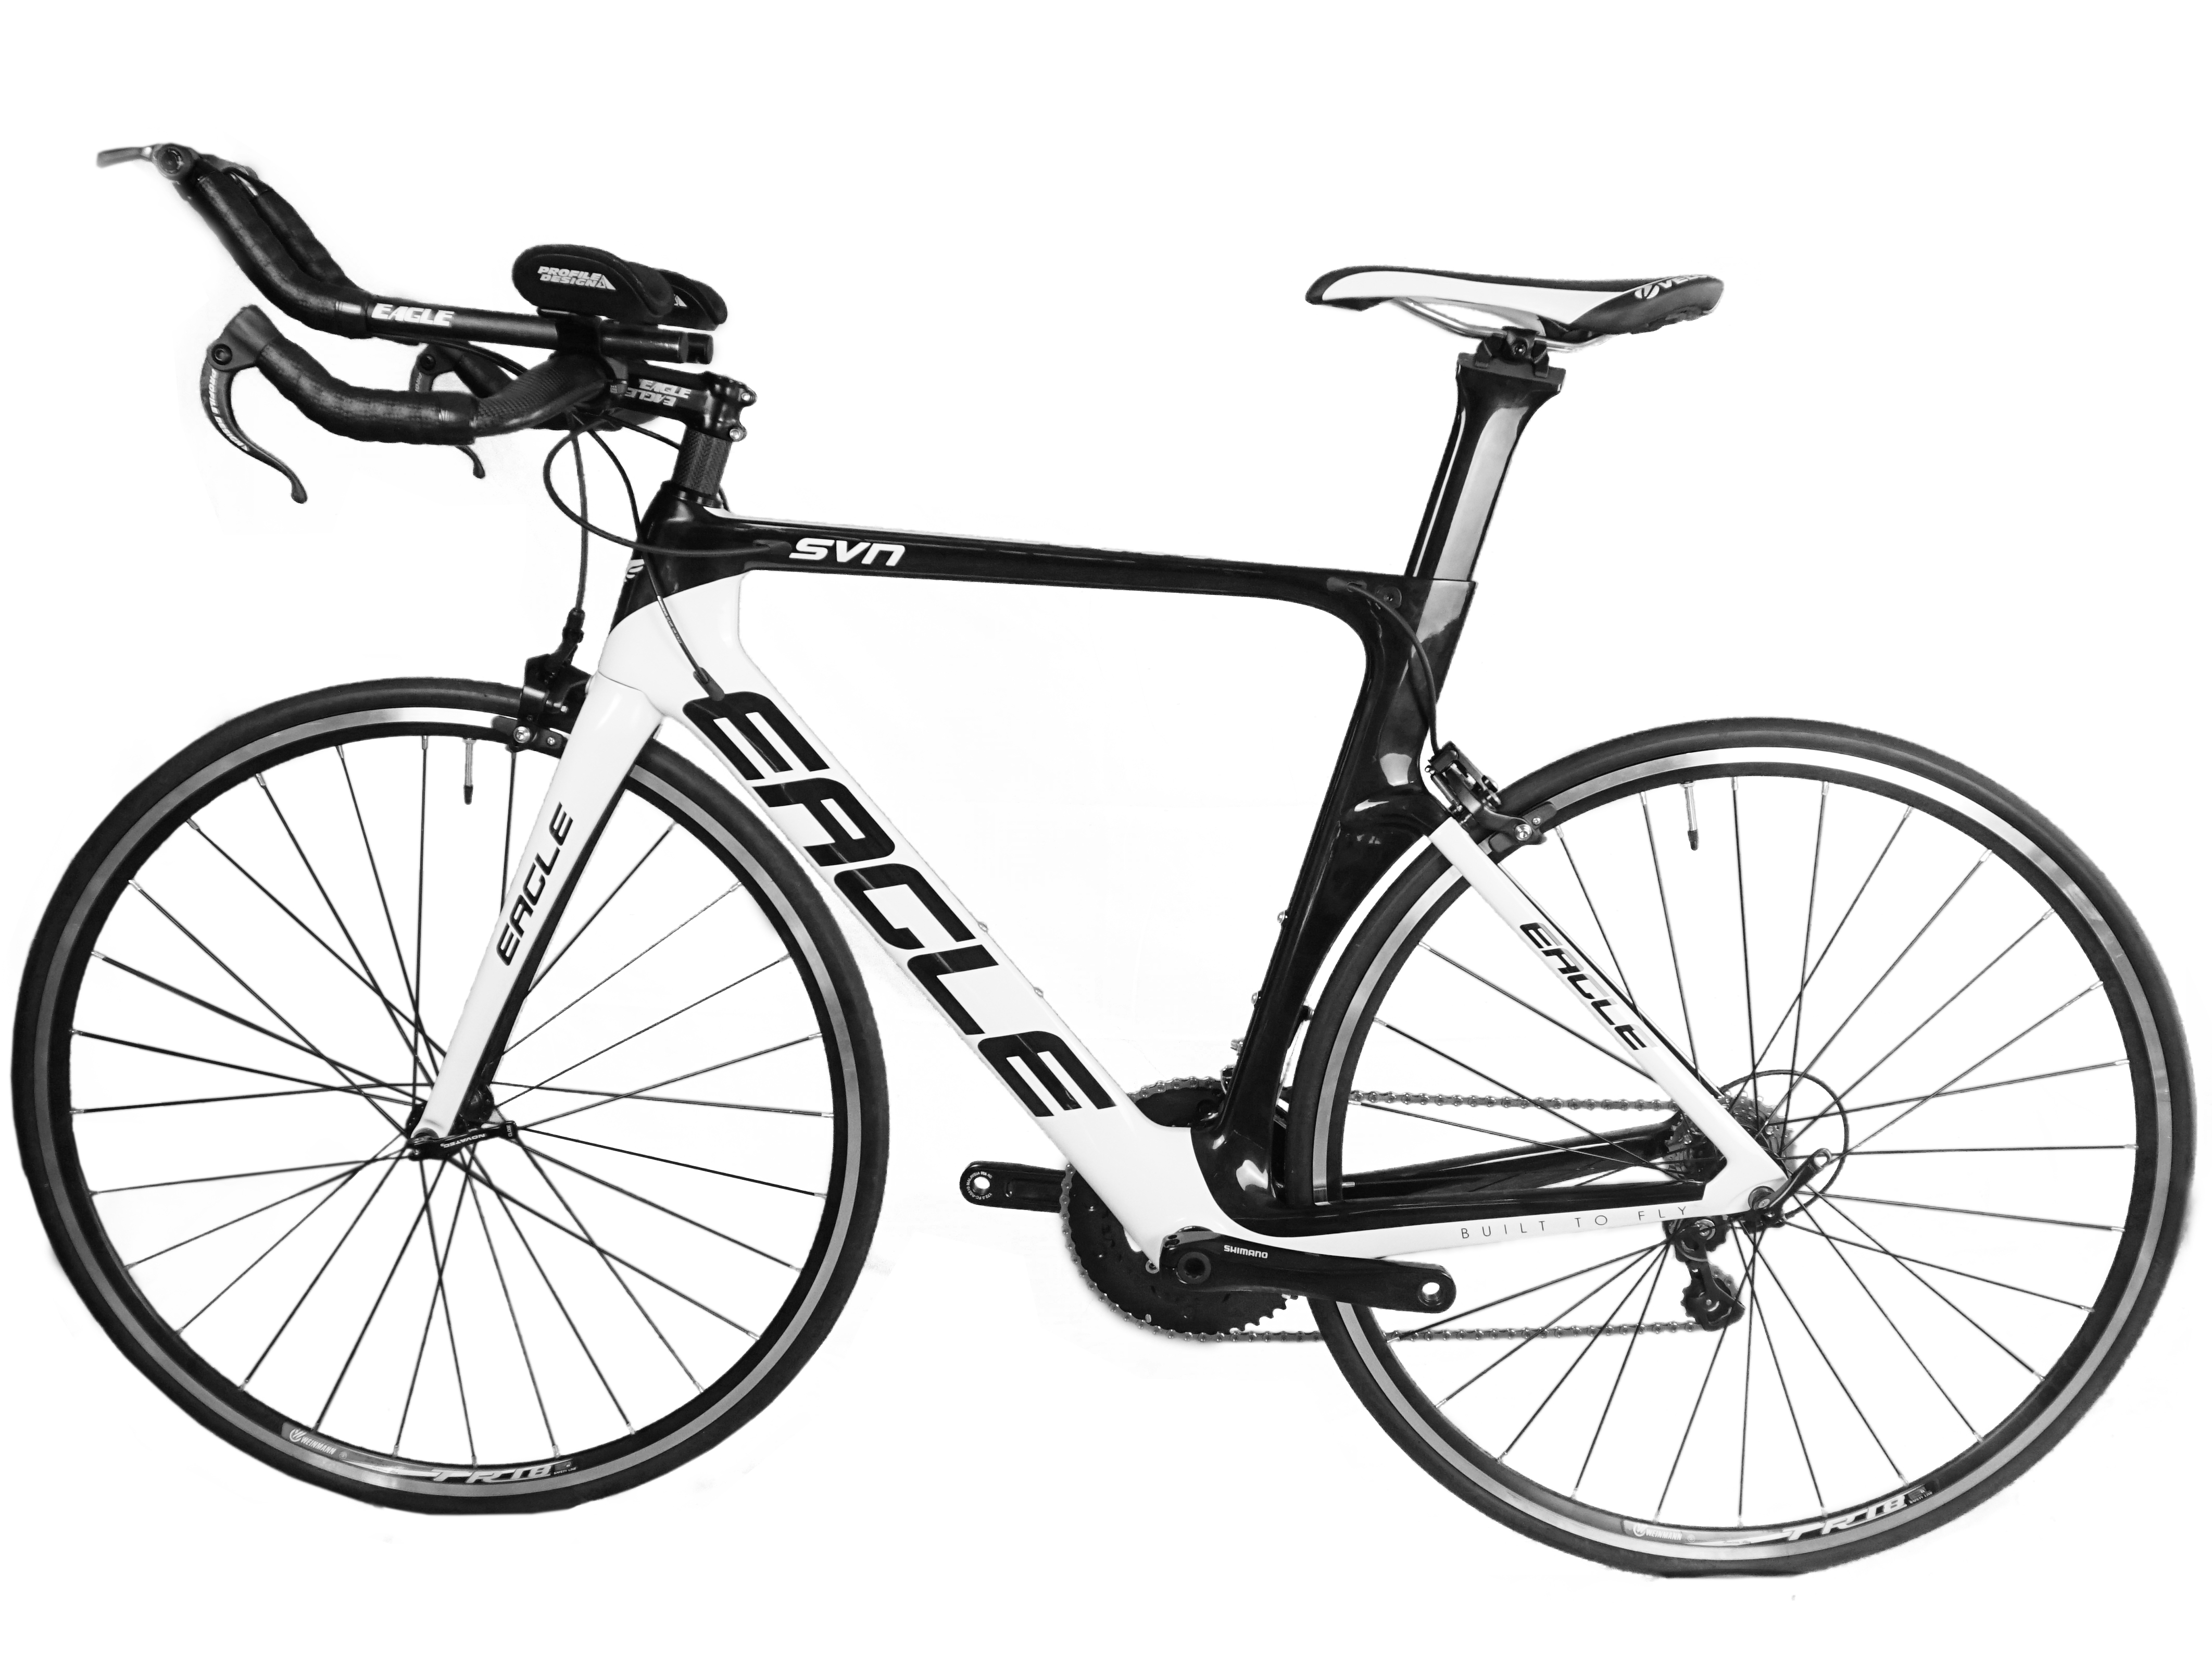 Eagle T1 Carbon Fiber Triathlon Or Time Trial Bike